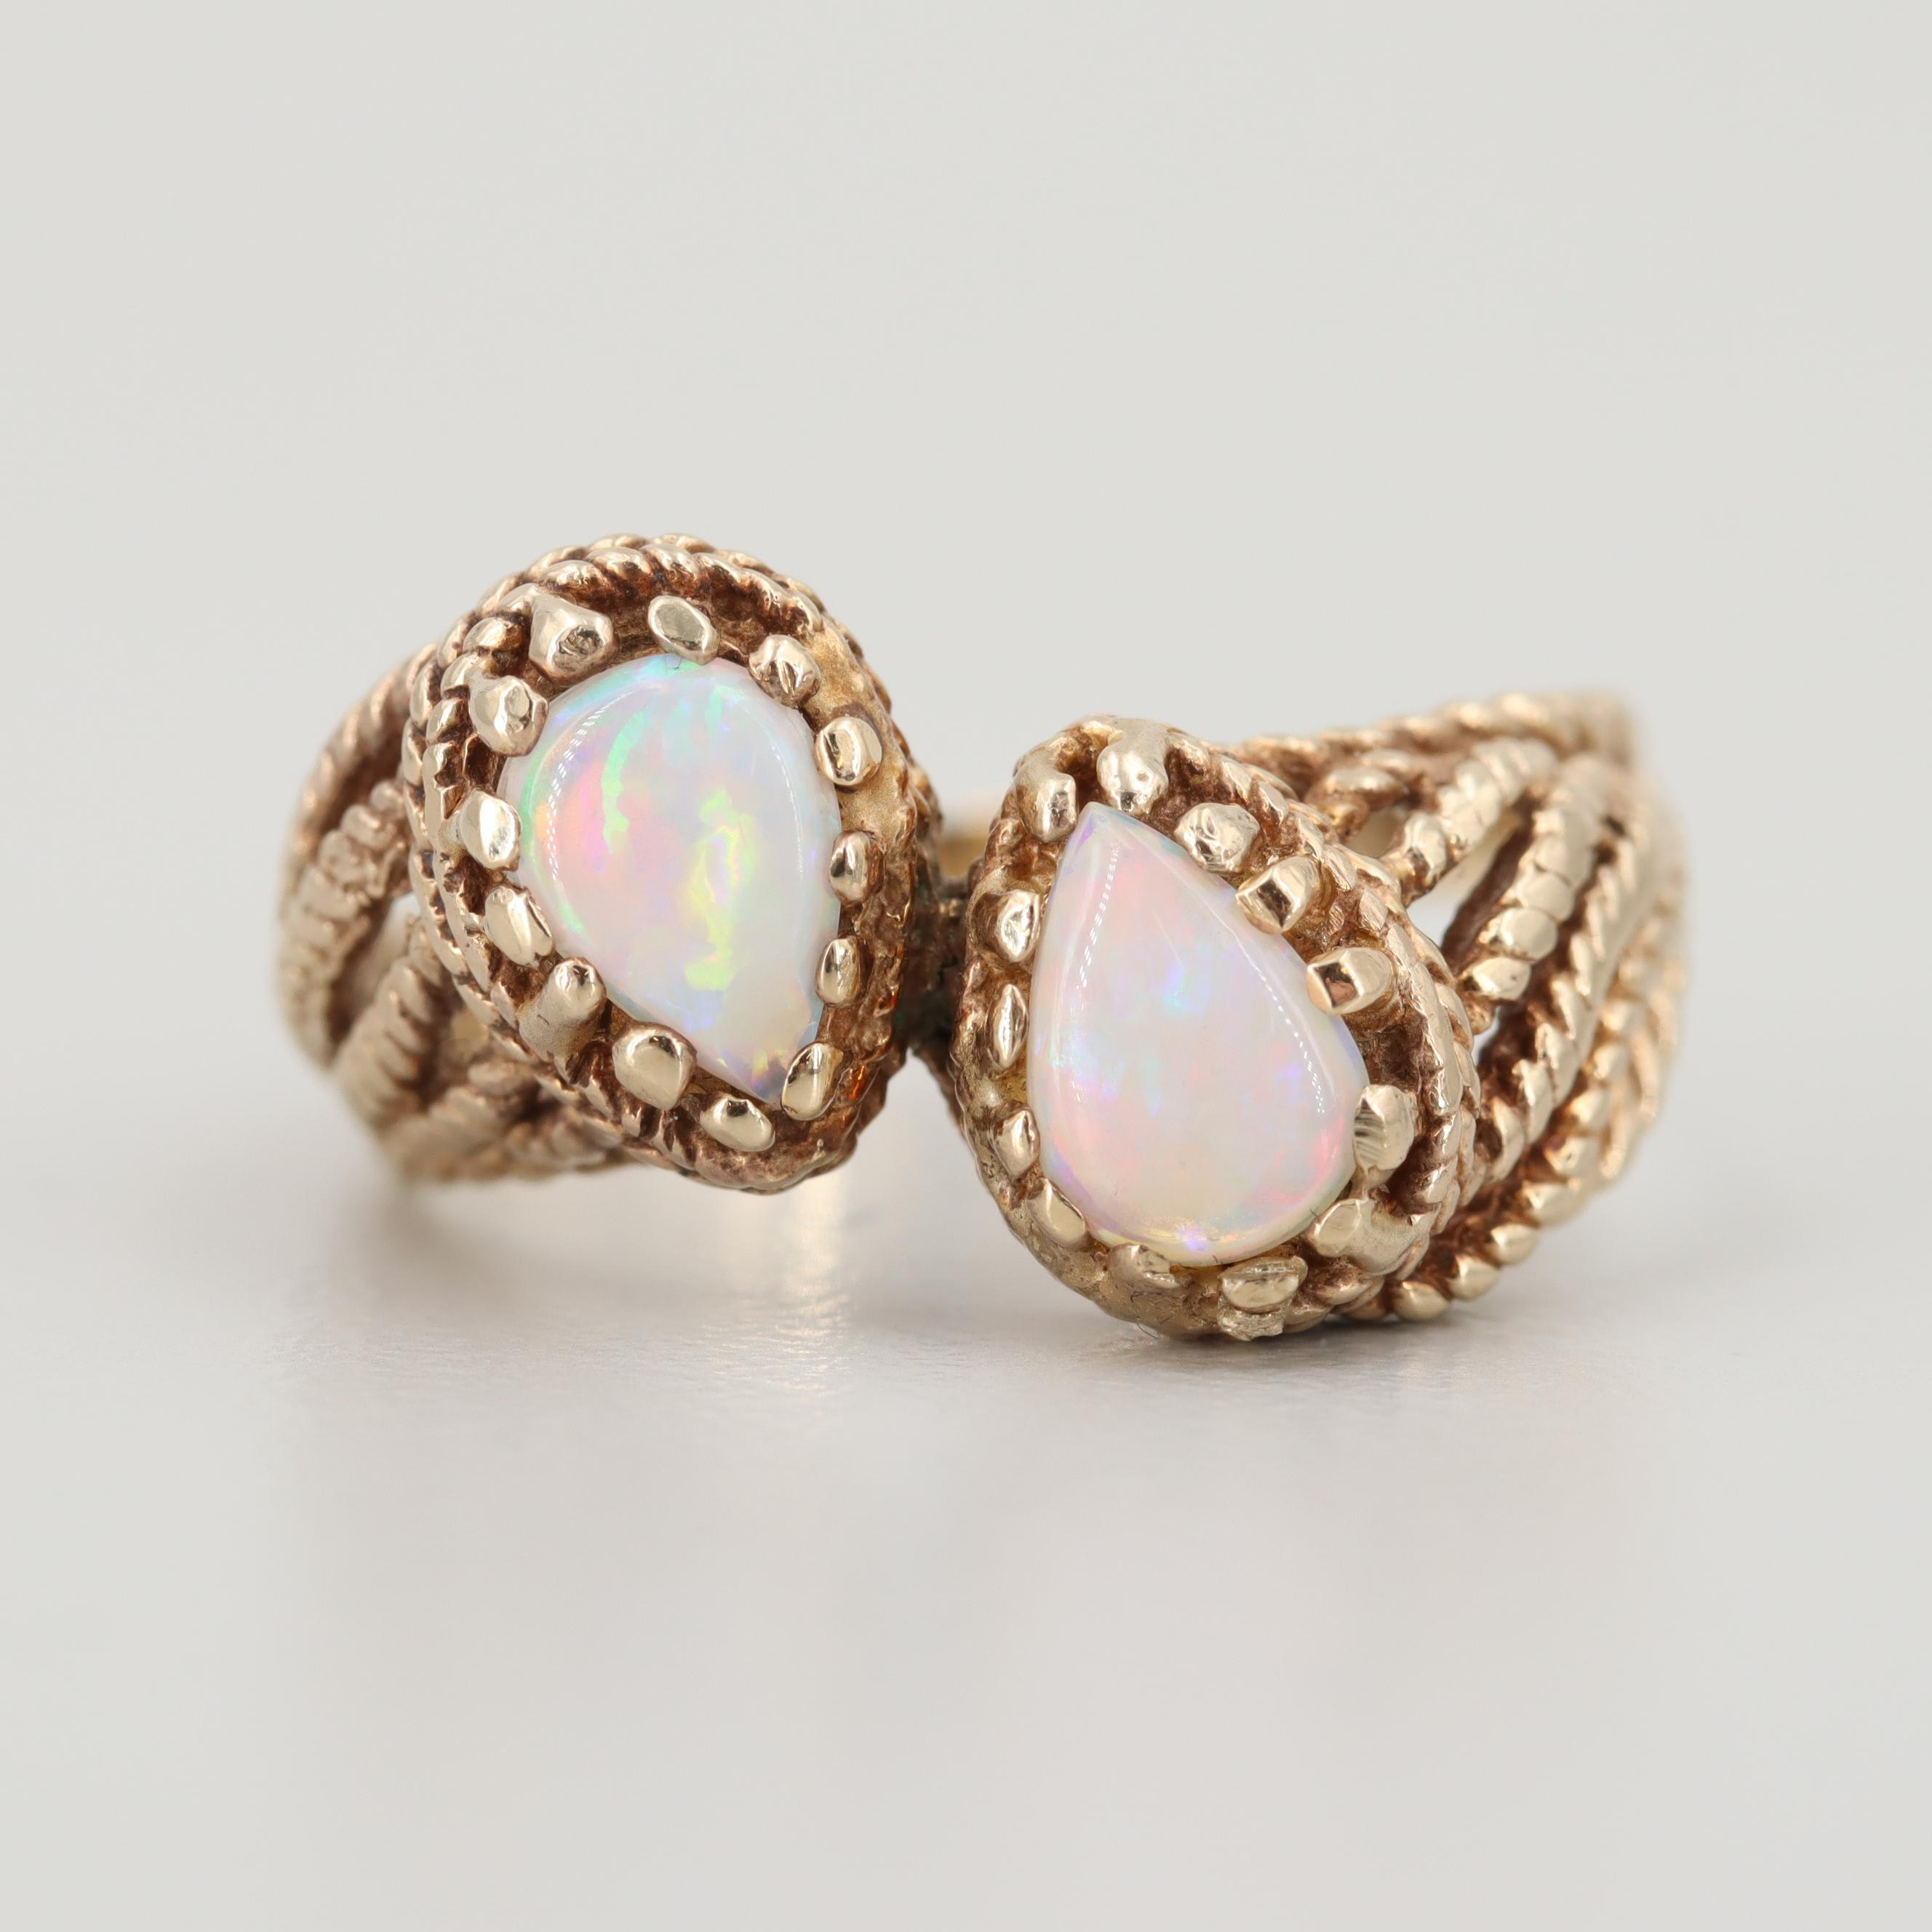 10K Yellow Gold Opal Wirework Ring